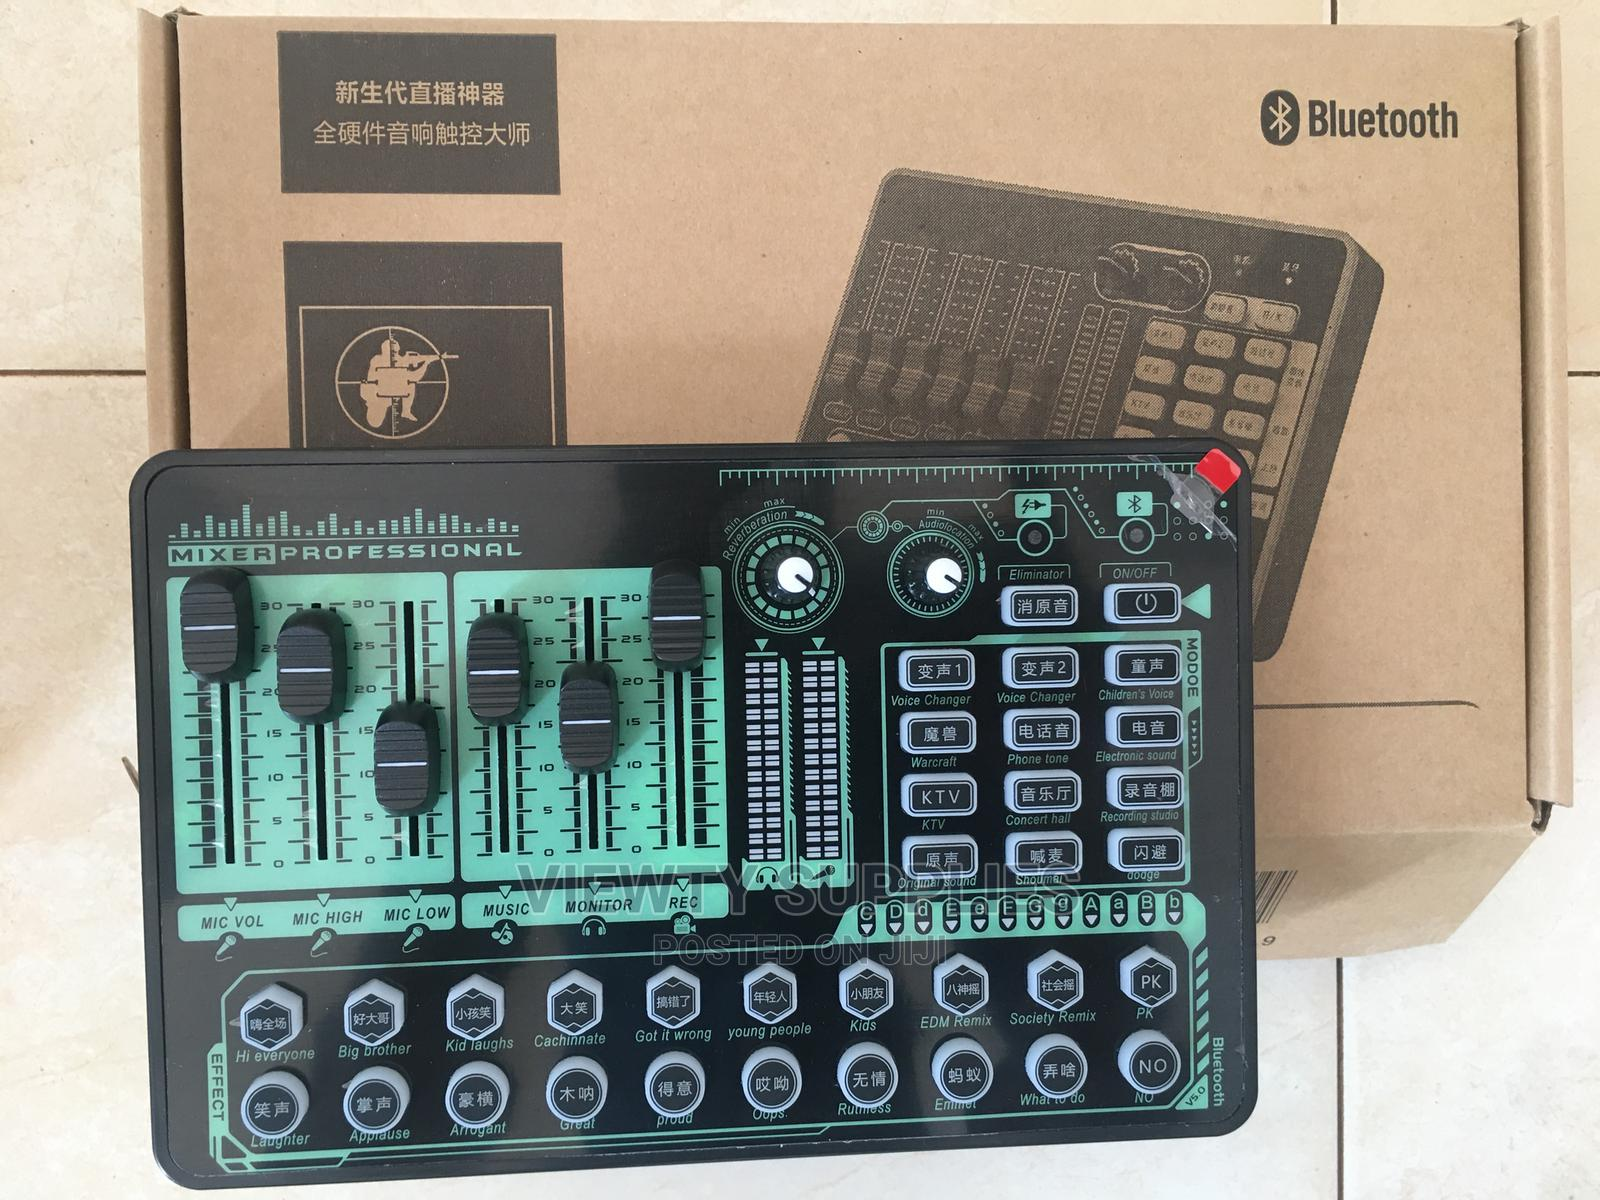 External Studio Sound Card for Recording and Live Streaming